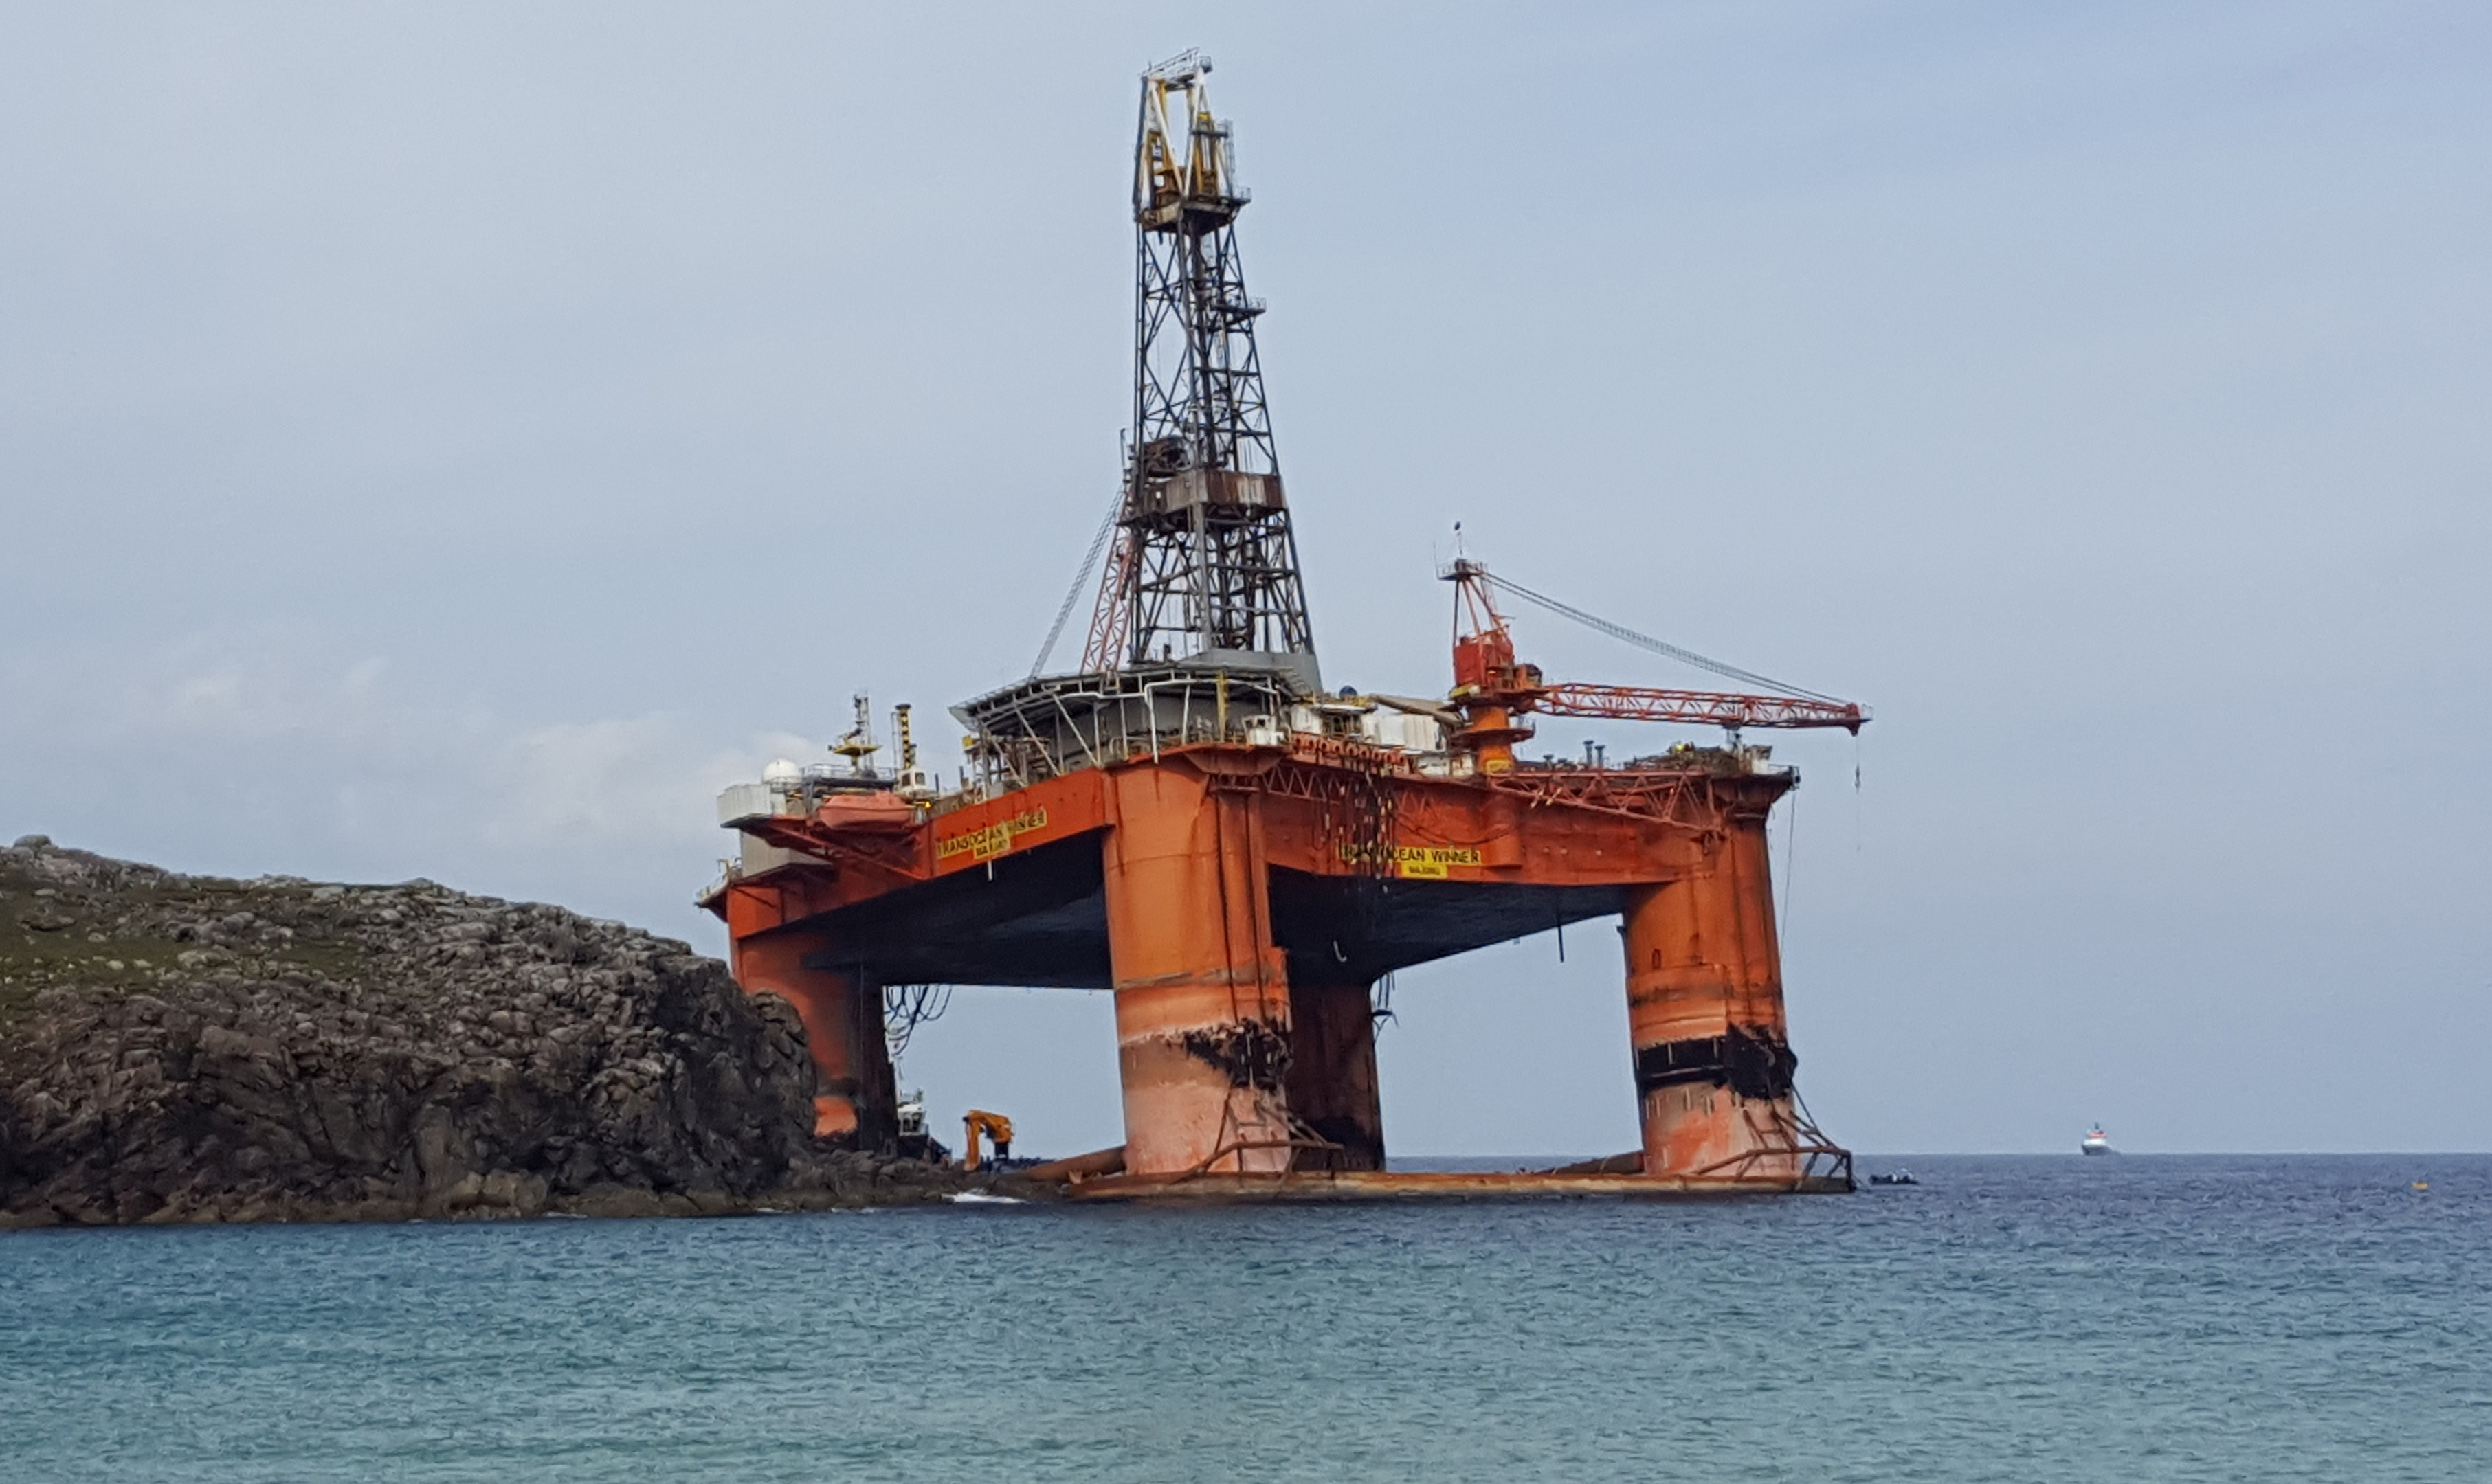 The Transocean Winner has been towed to Turkey from the UK to be decommissioned